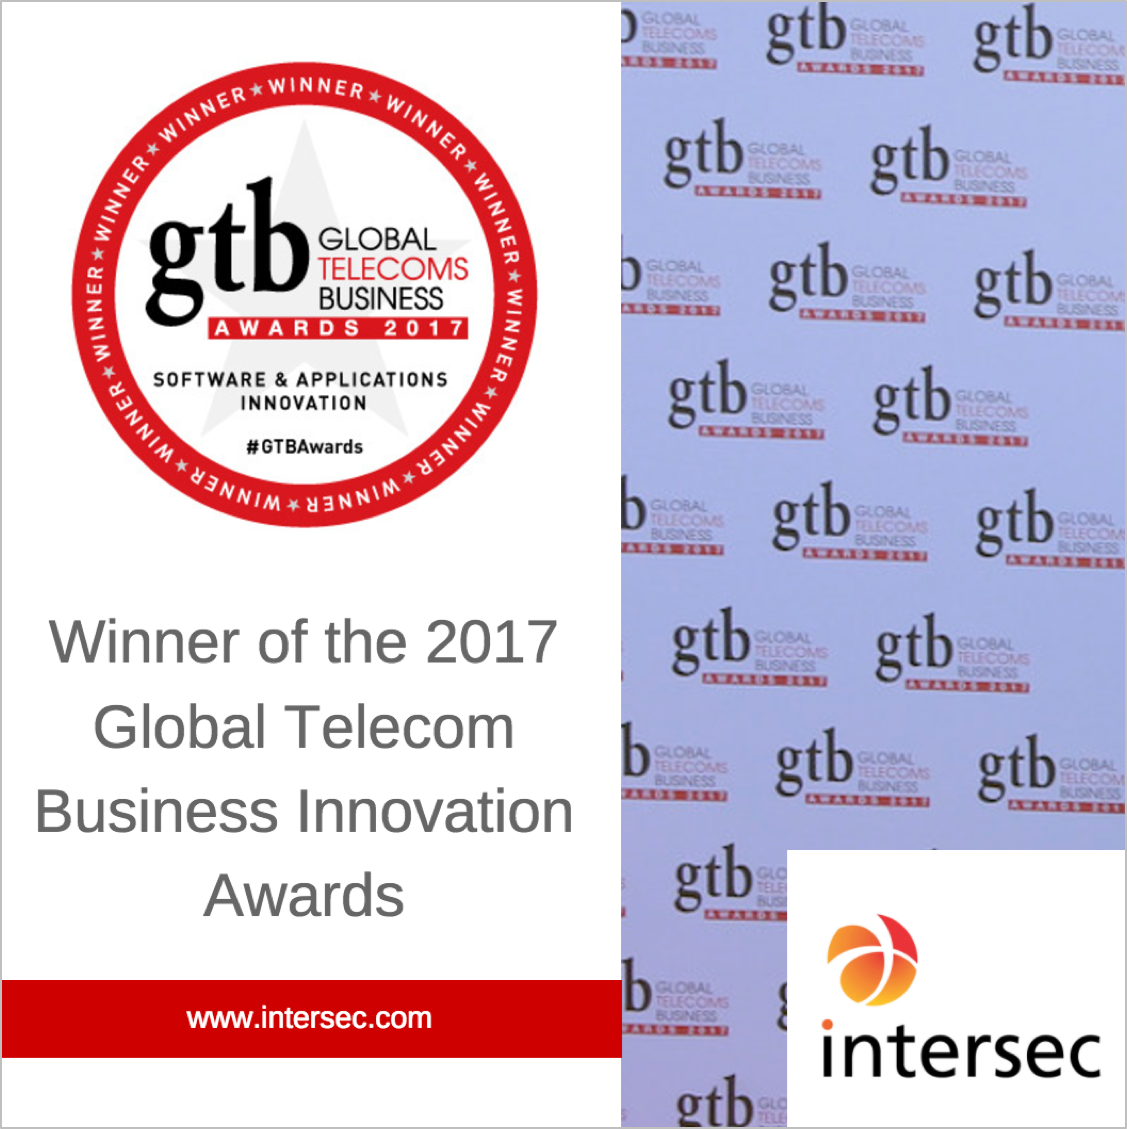 GTB innovation Awards 2017